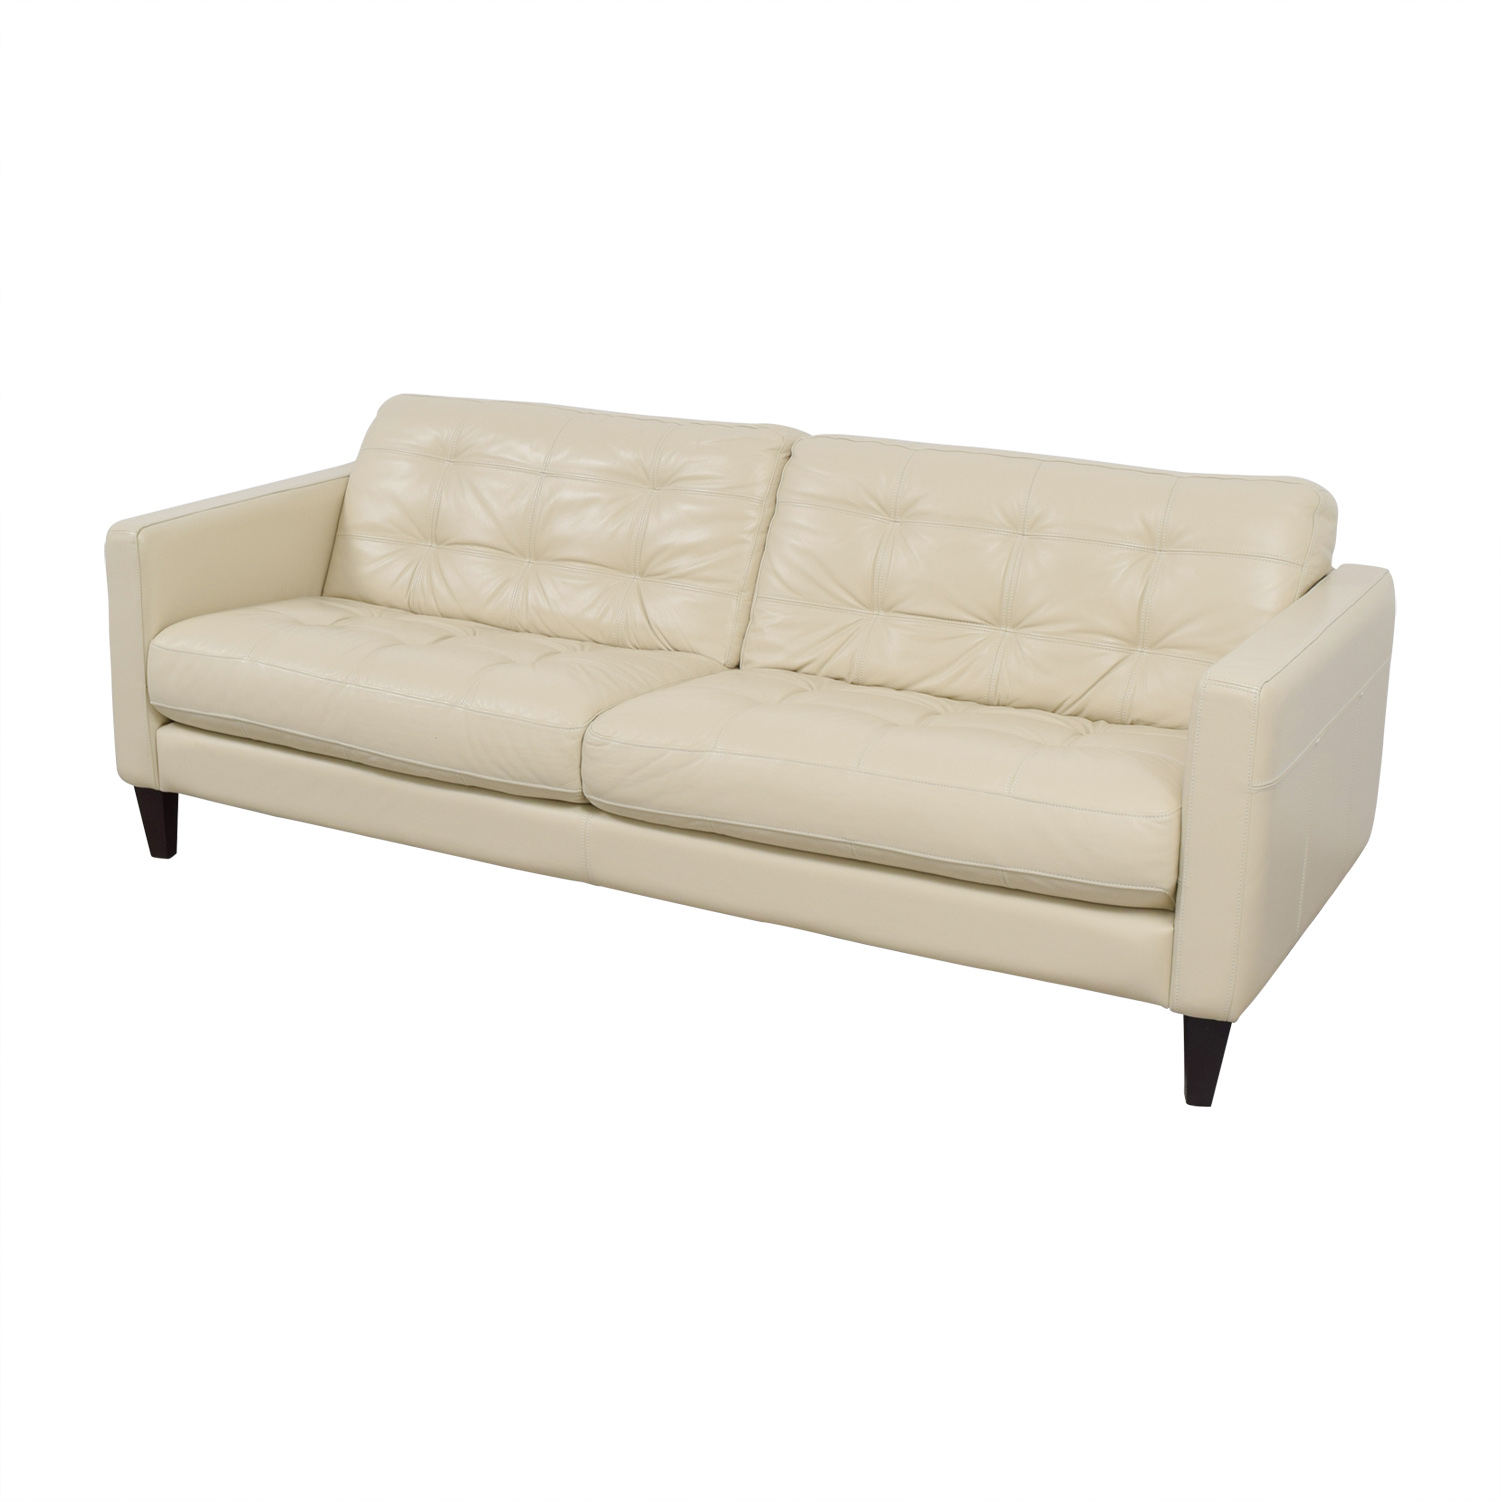 white leather sofa cheap glides for carpet 48 off macy 39s tufted sofas